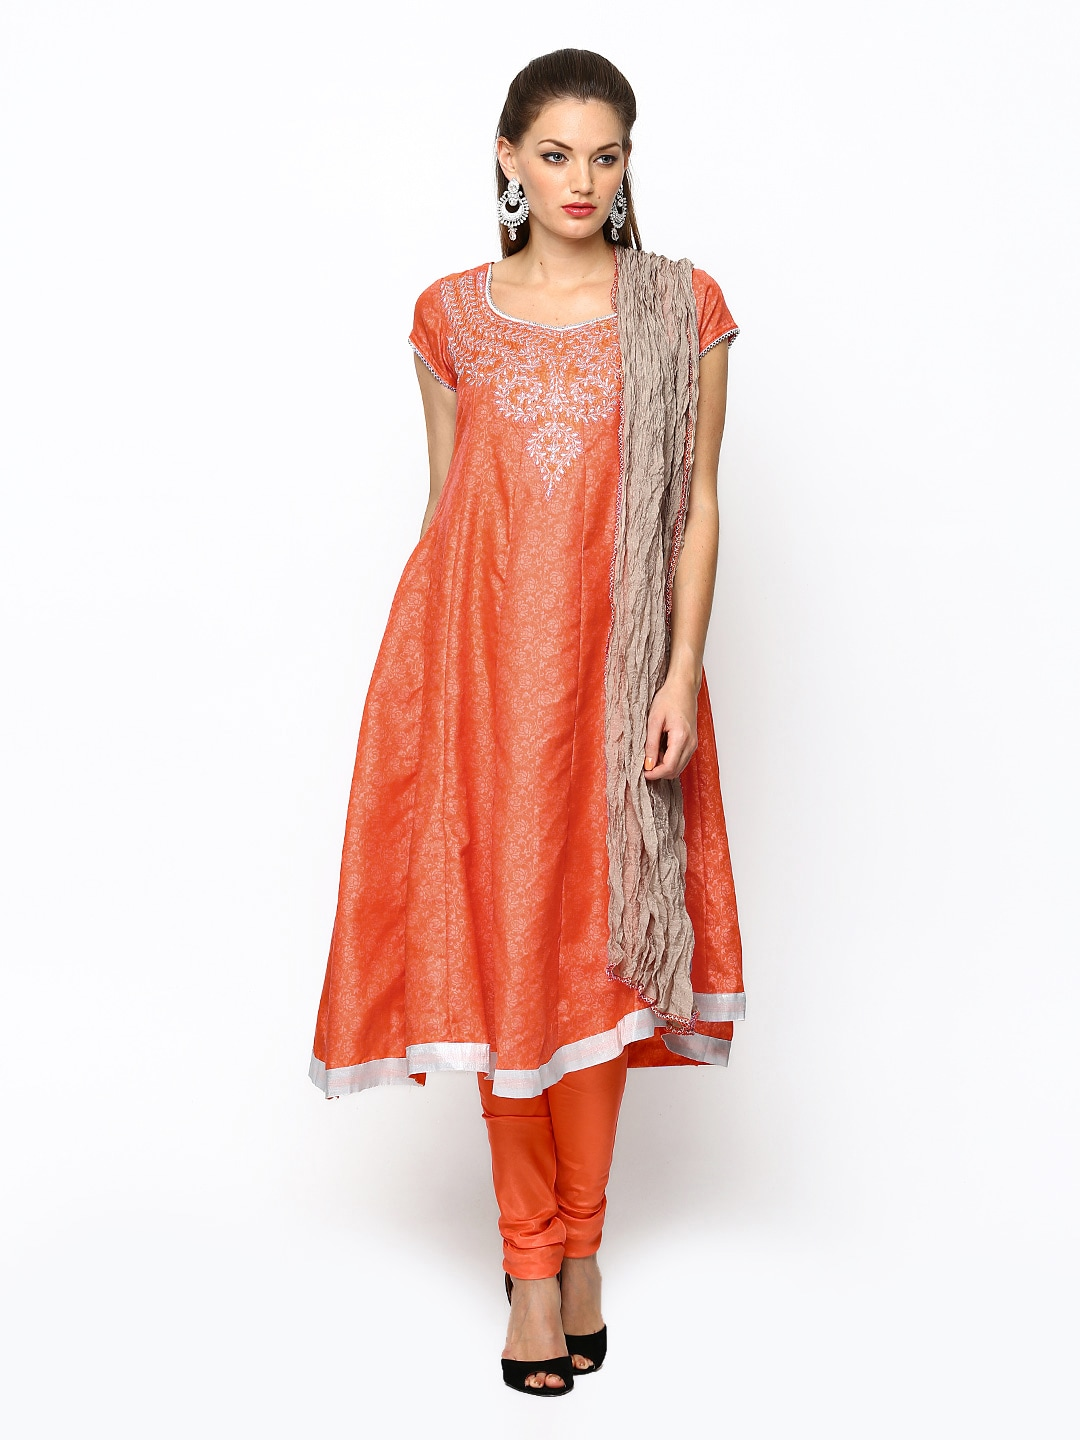 Folklore Orange Churidar Kurta with Dupatta